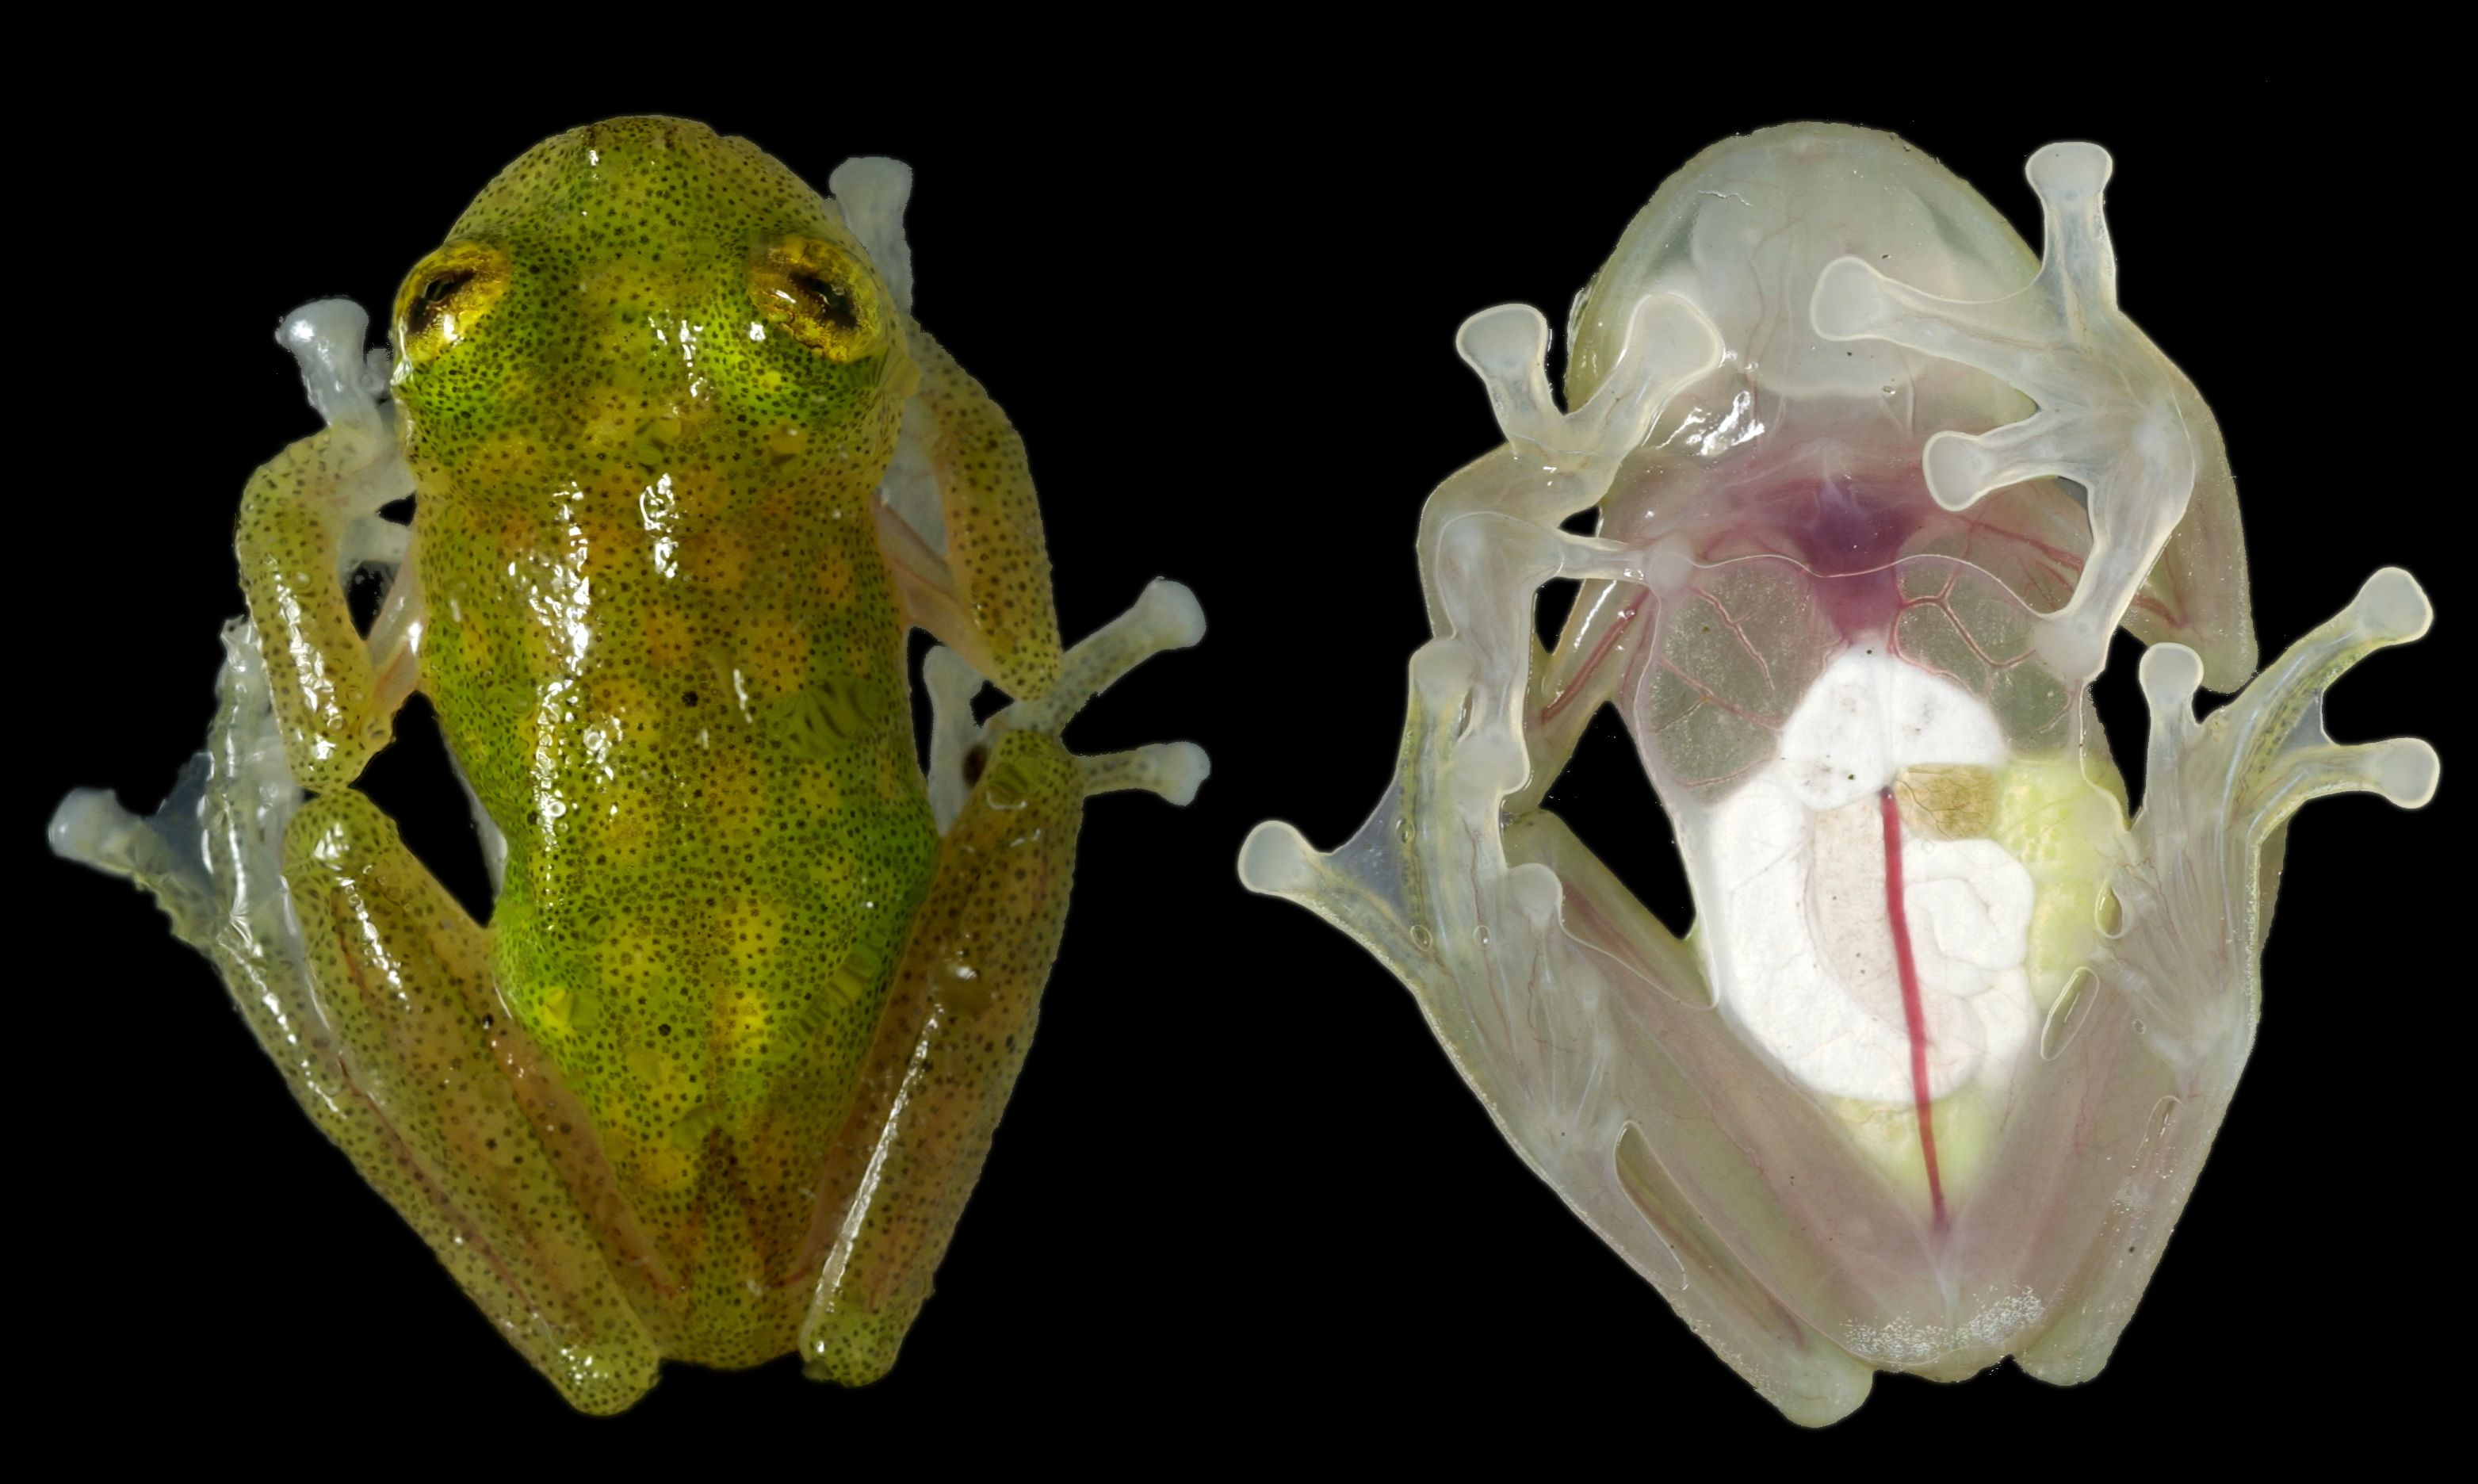 Glass Frogs Family Centrolenidae Glass Frog Frogs And Animal - Real life kermit the frog discovered in costa rica